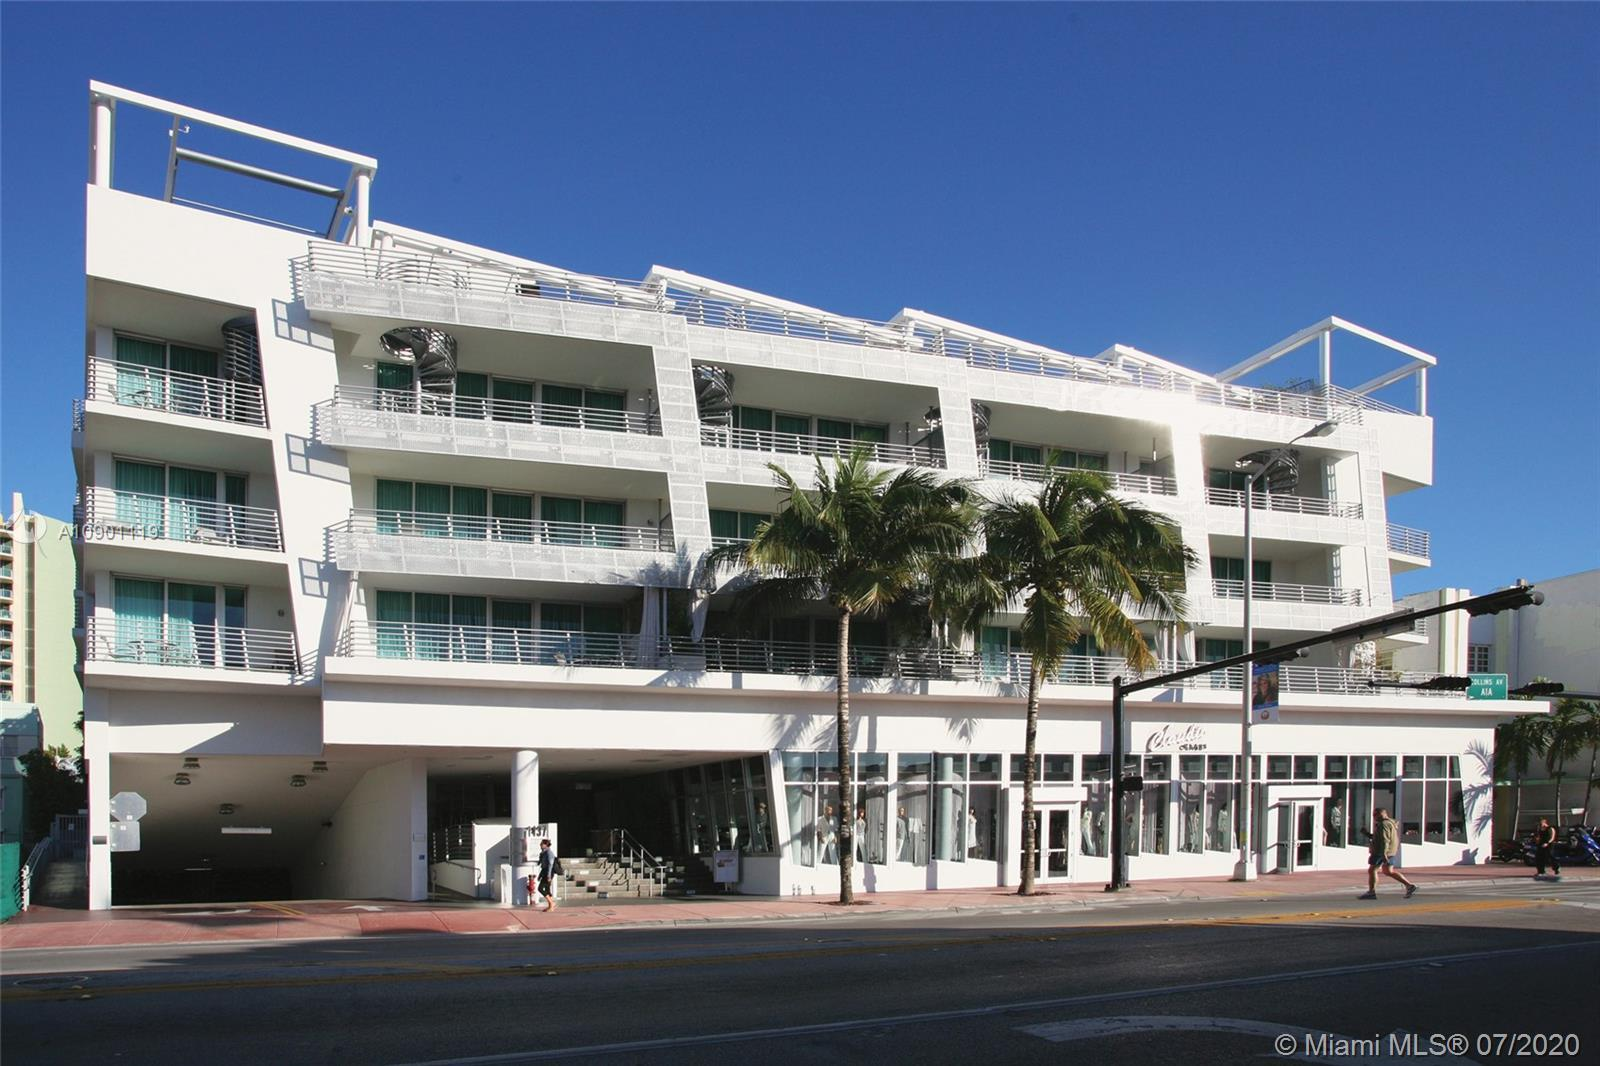 SOUTH BEACH – Fully furnished suite in the Z Ocean Hotel across from the beach on world-renowned Oce